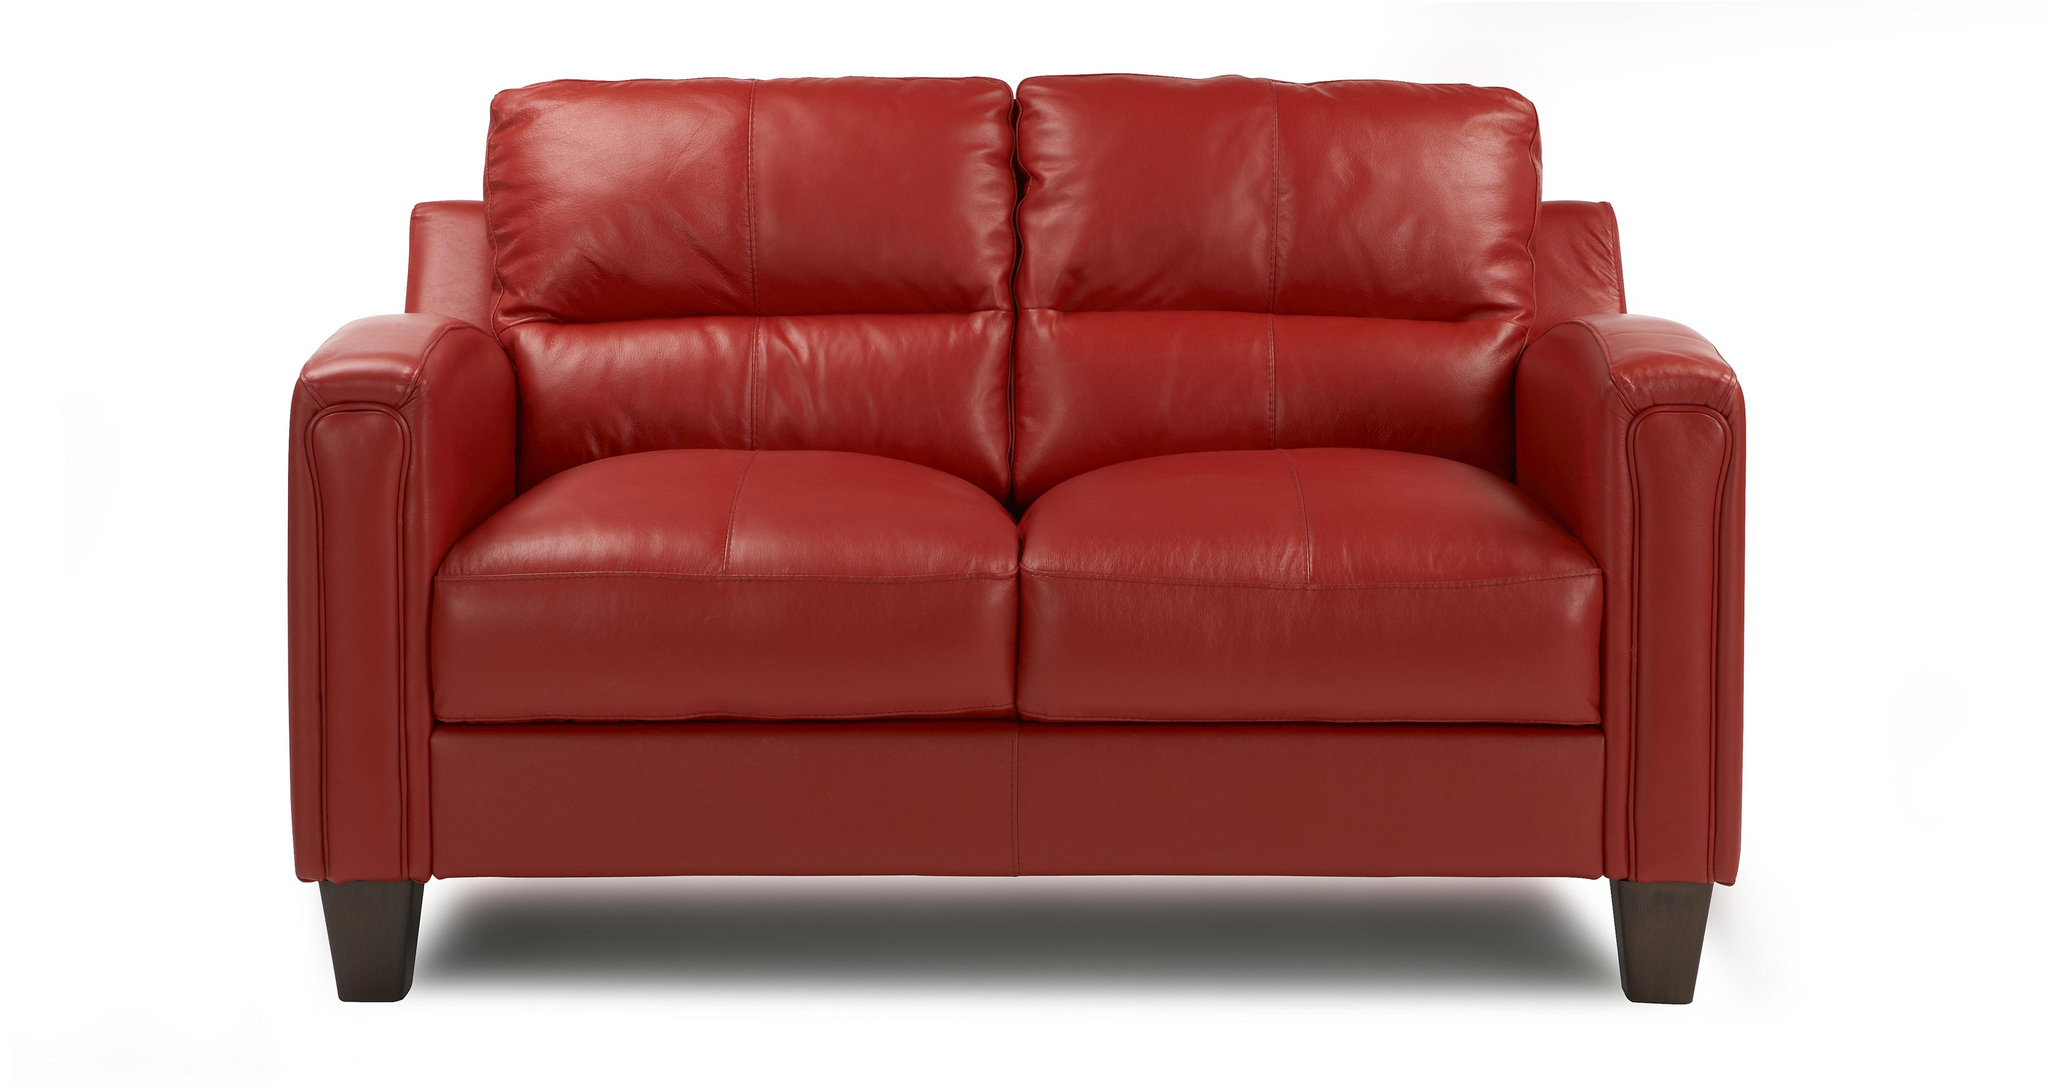 dfs leather sofas on sale